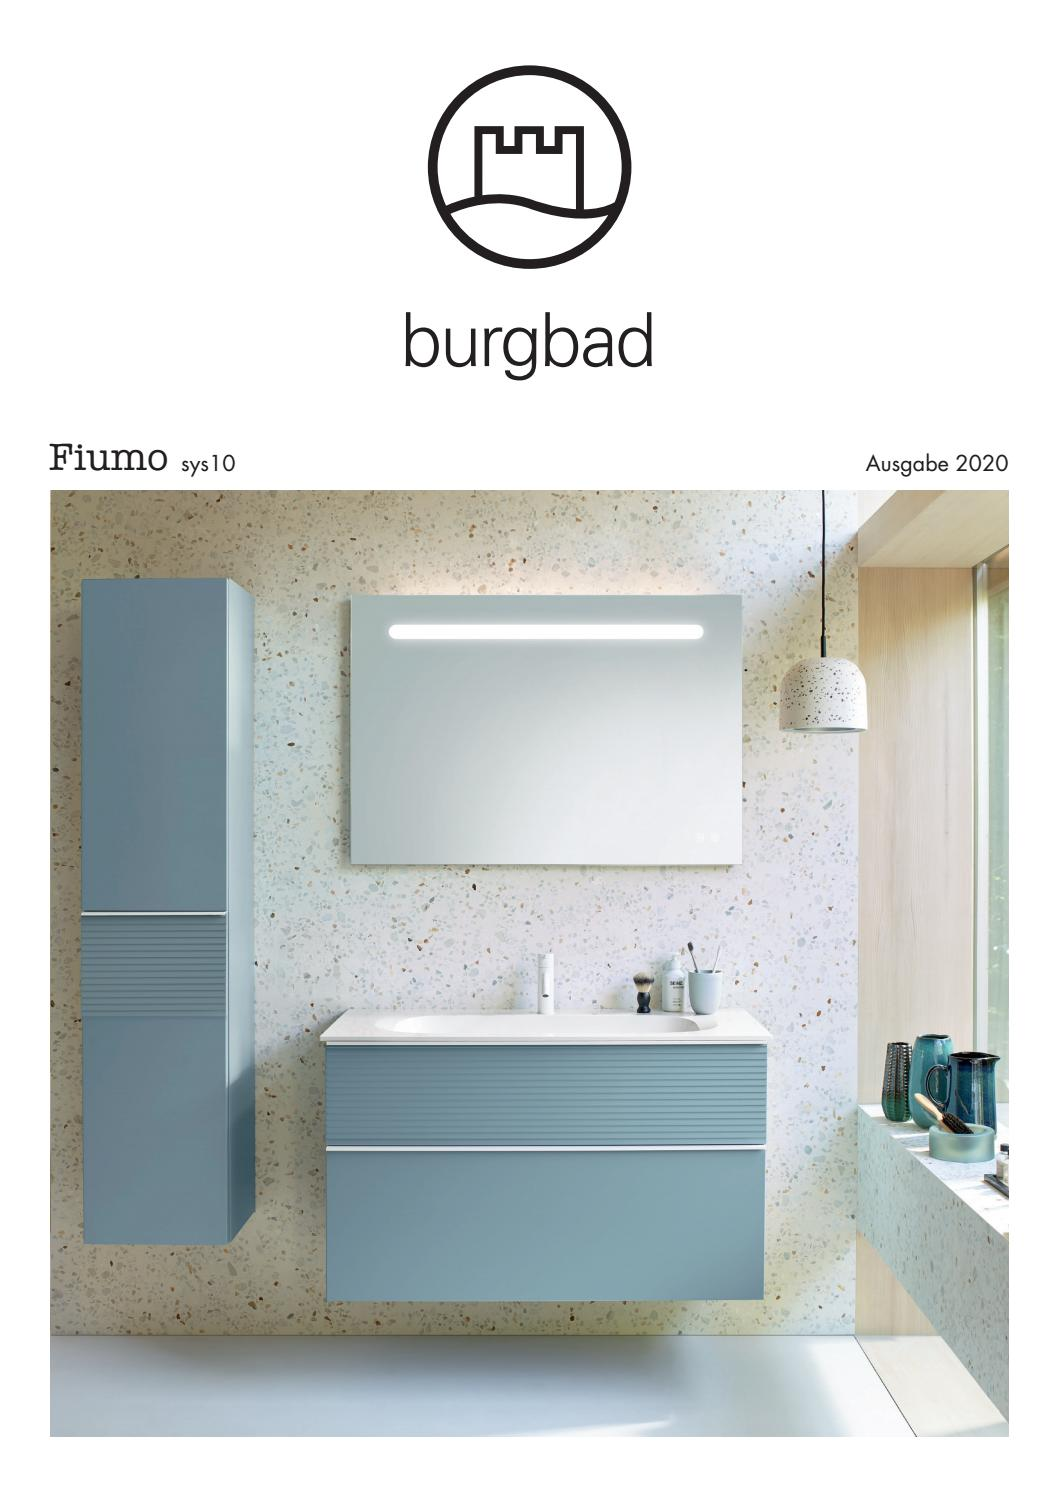 Burgbad Fiumo Sys10 2020 By Sanilux Issuu